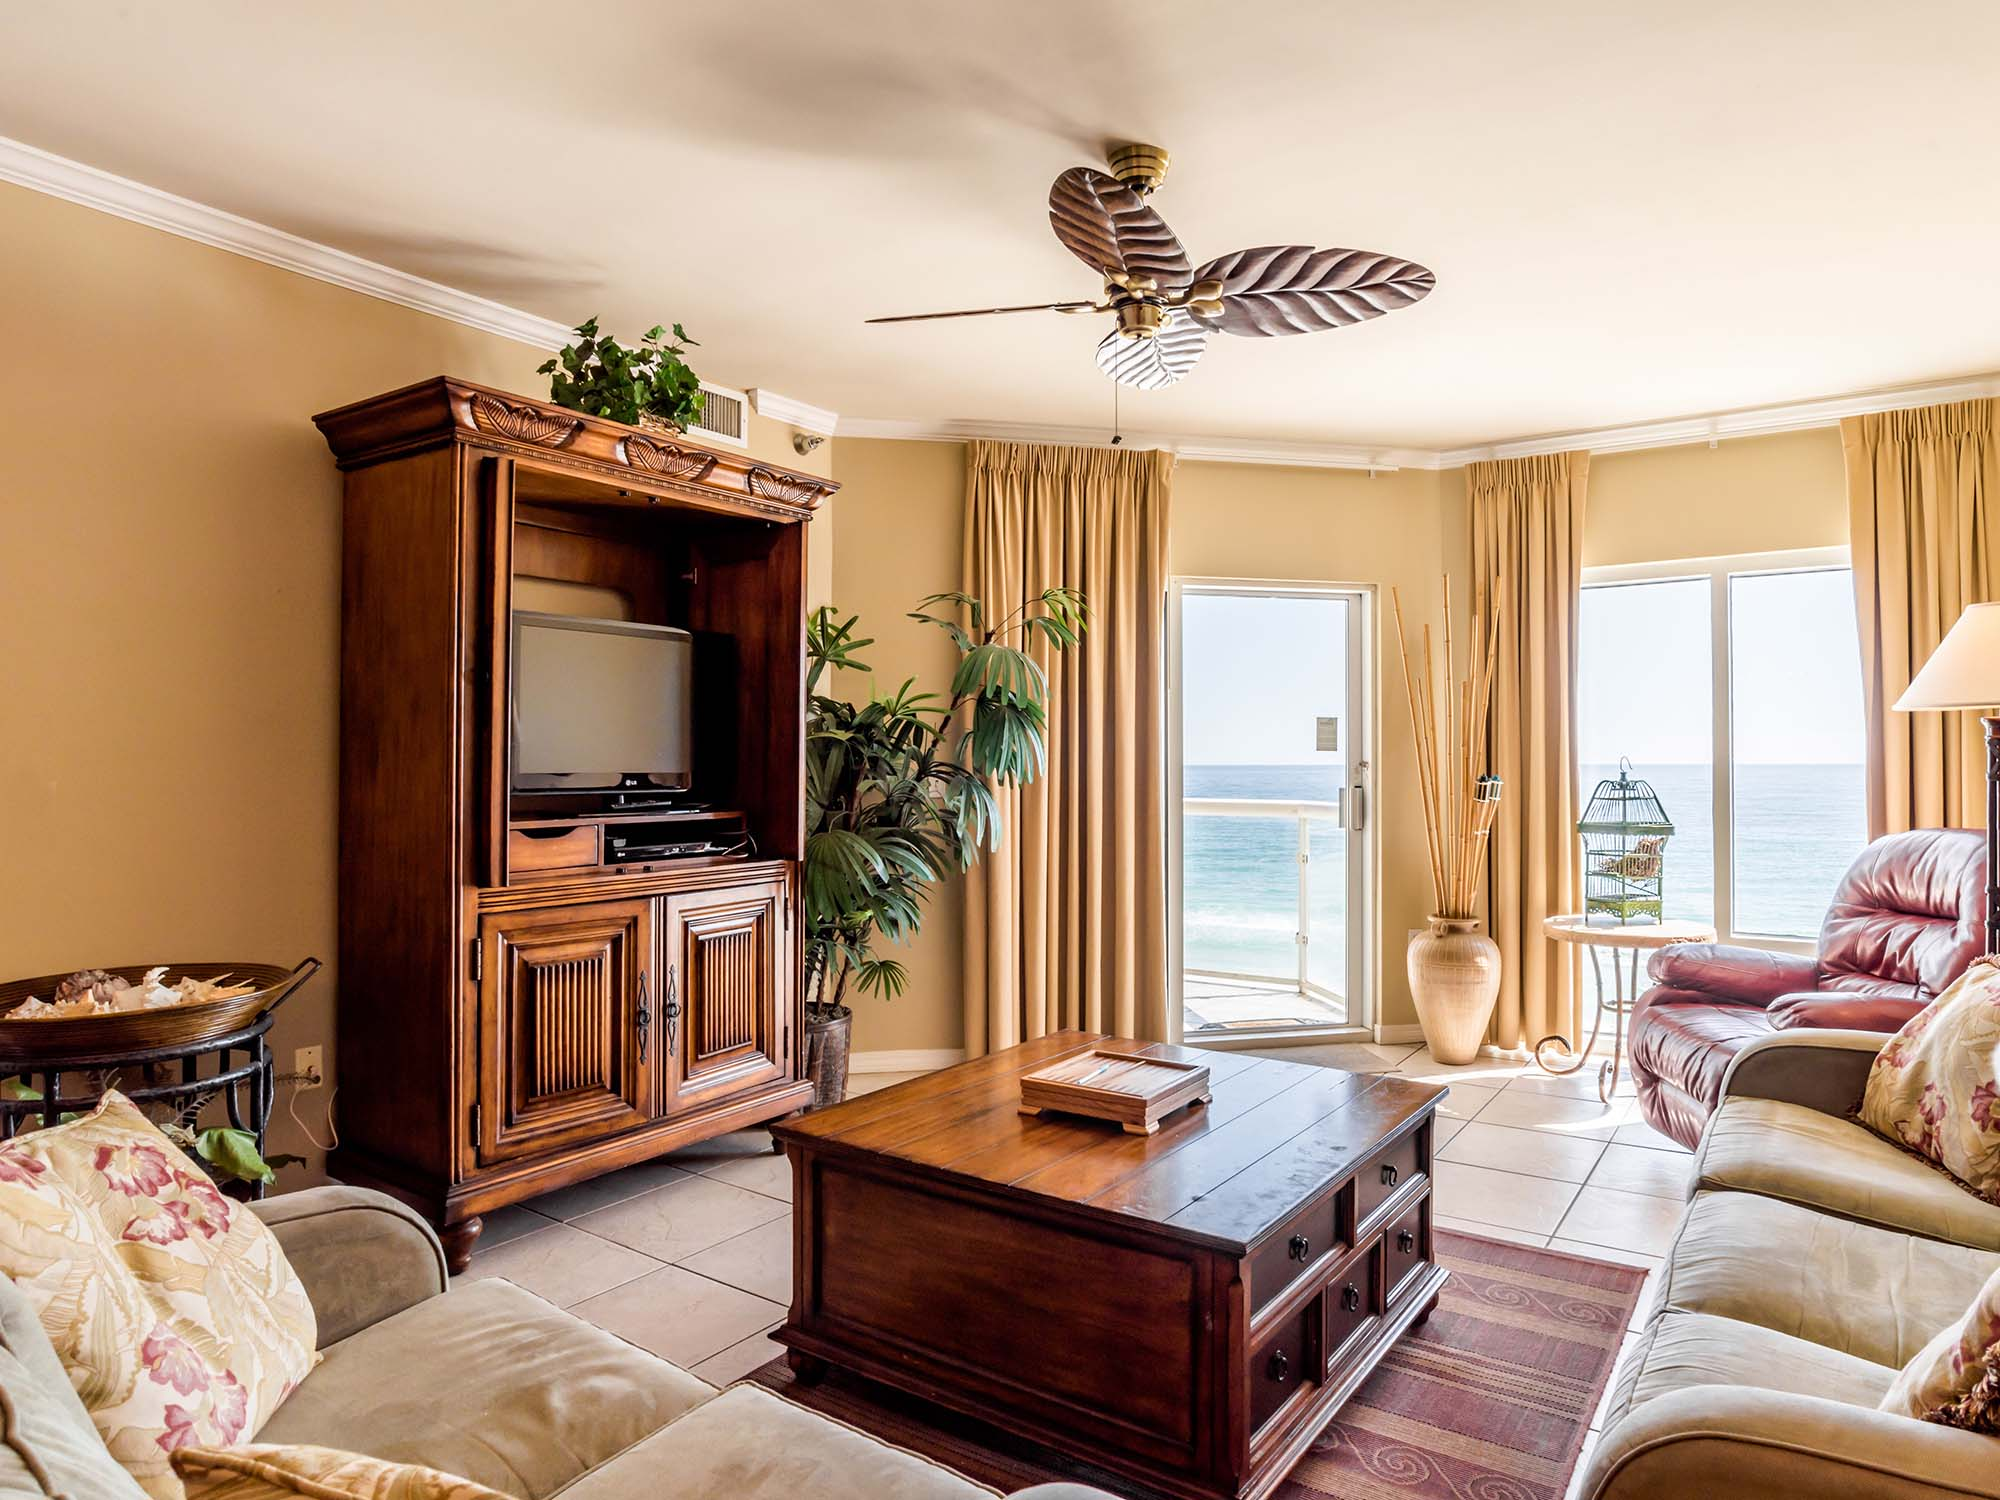 Emerald Isle 806 Pensacola 2 Bedroom 2 Full Bathroom Place To Stay